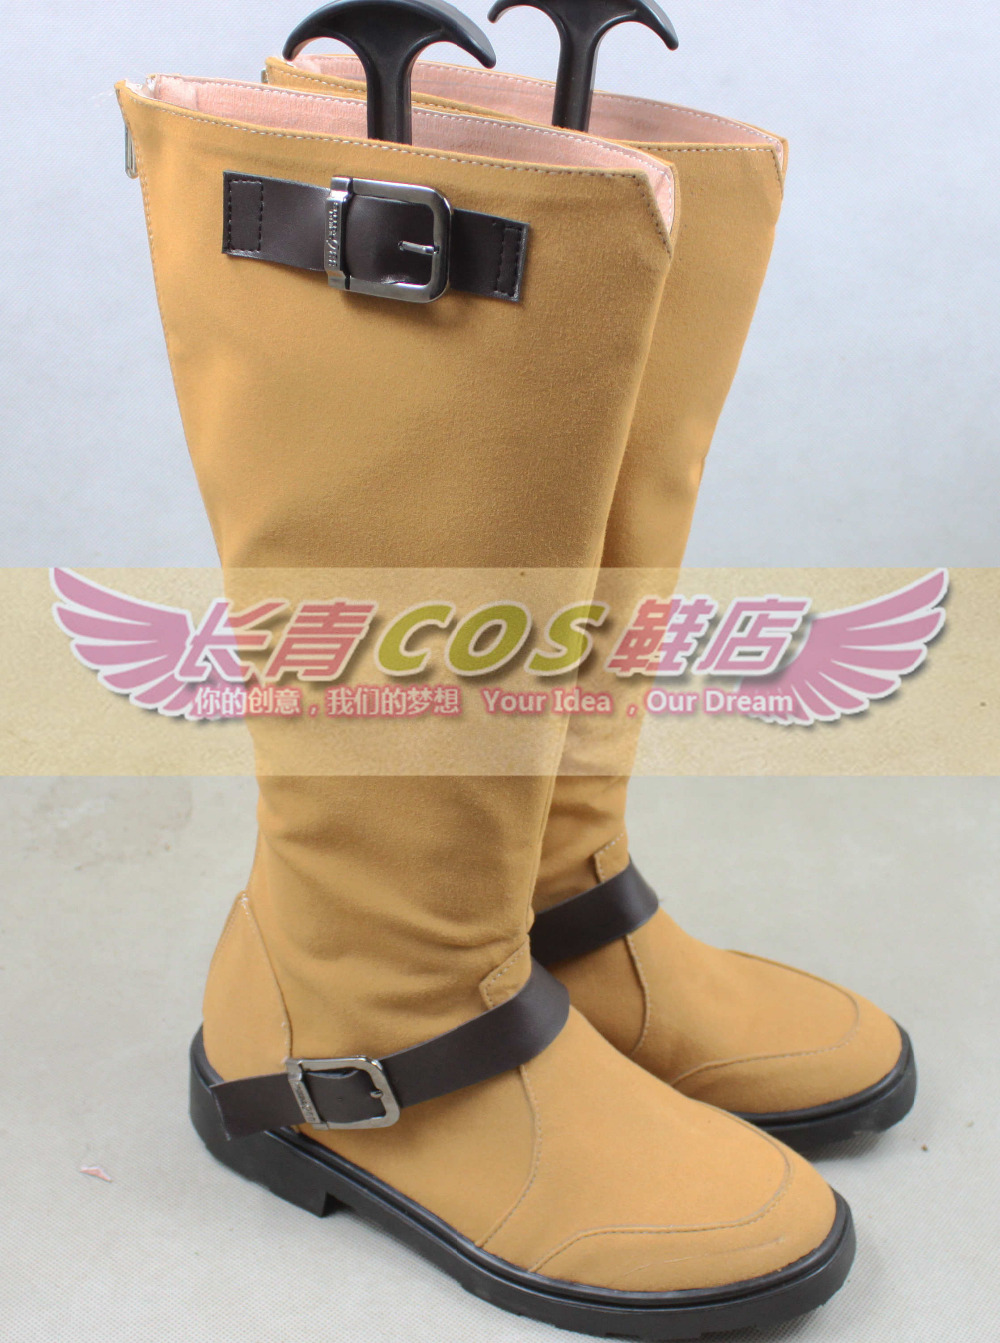 Noragami YATO lighter color ver Cosplay Boots Shoes shoe boot #CQ010 Custom made Hand made(China (Mainland))